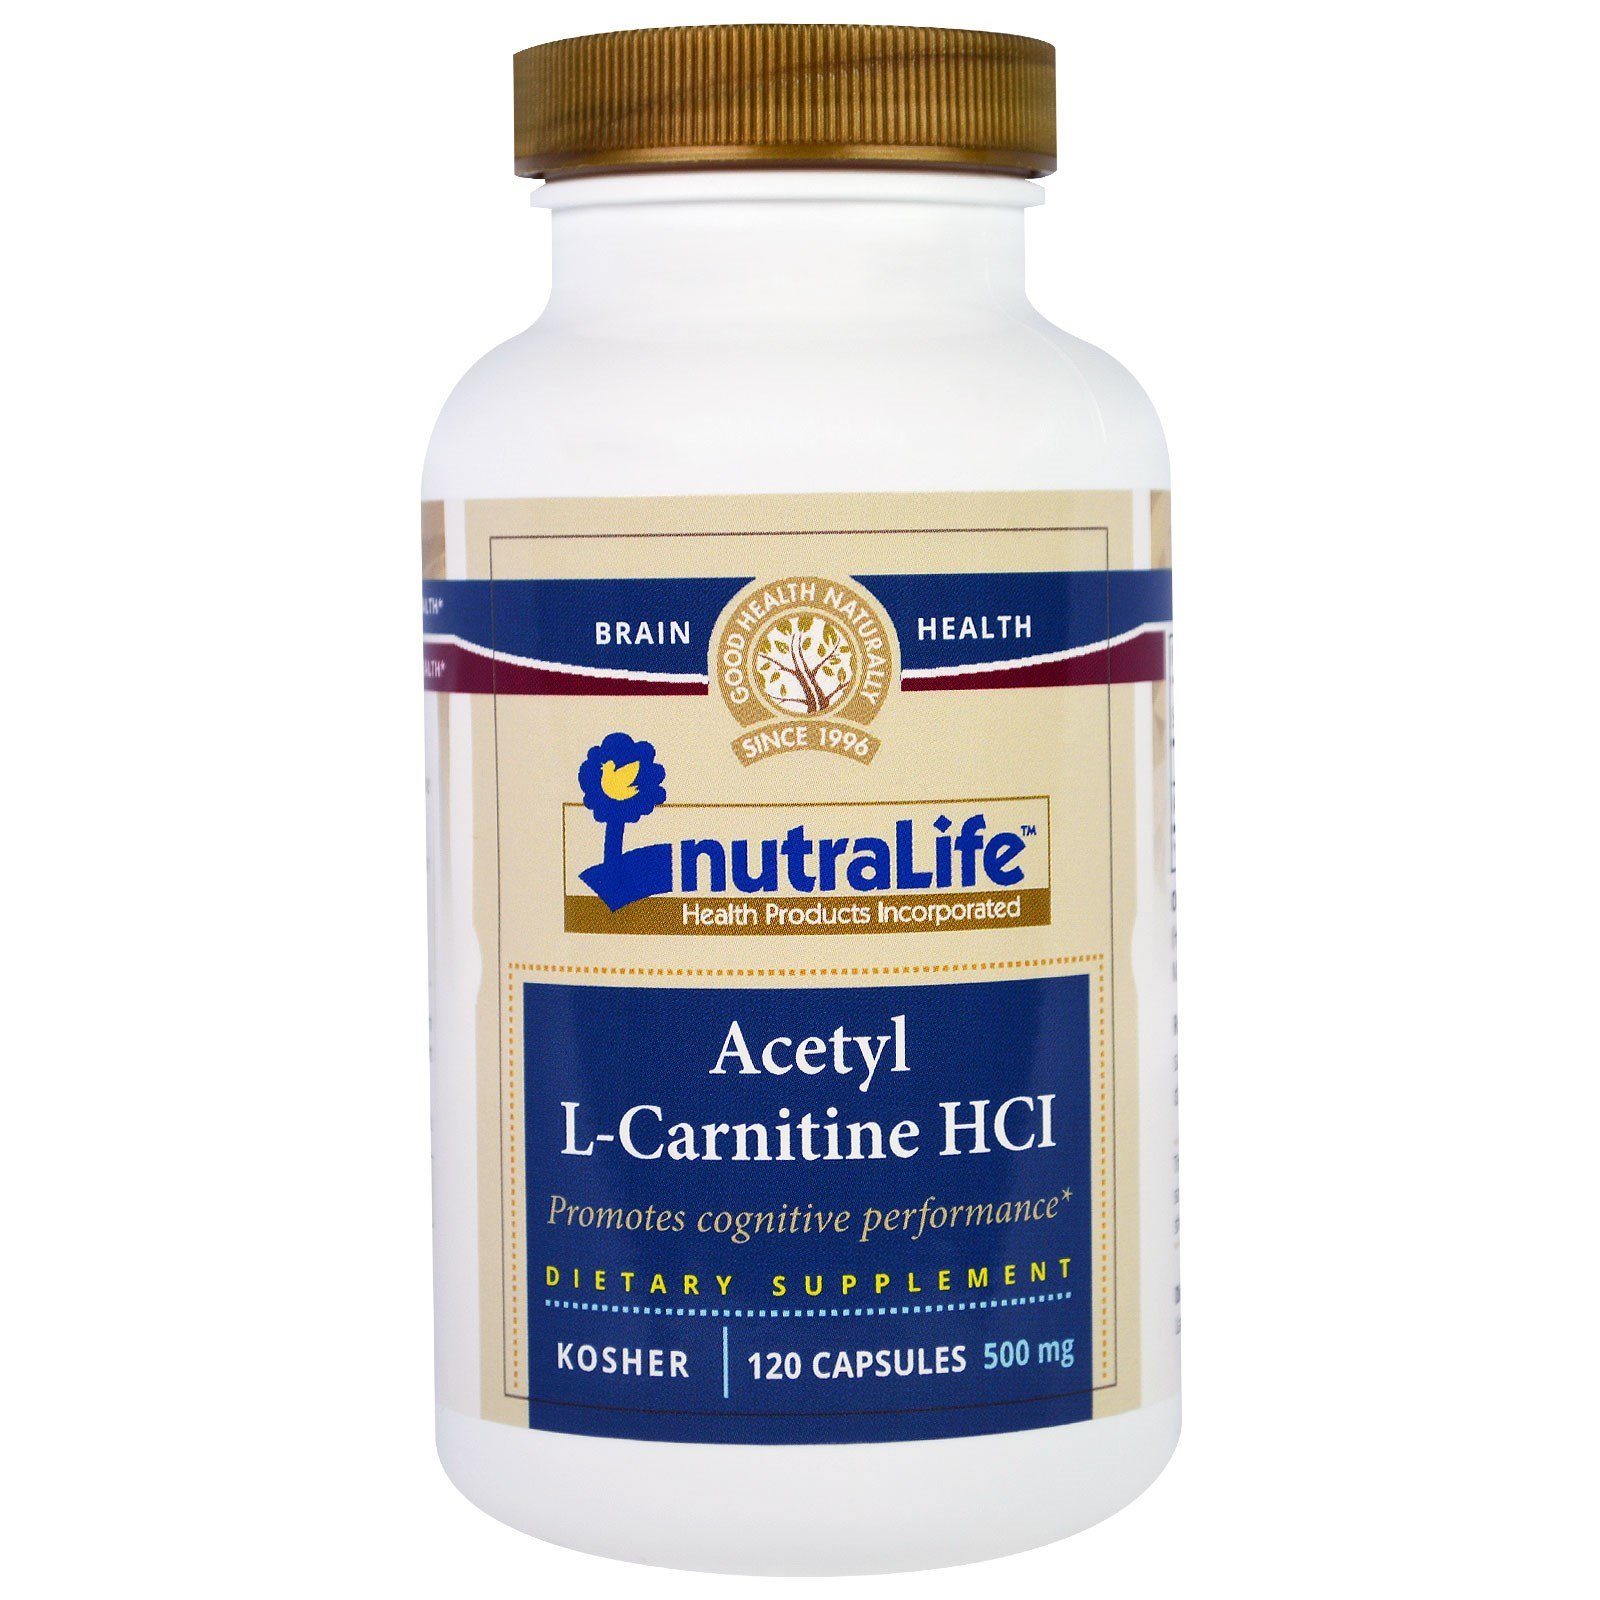 NutraLife, Acetyl L-Carnitine HCI, 500 mg, 120 Capsules - 3PC